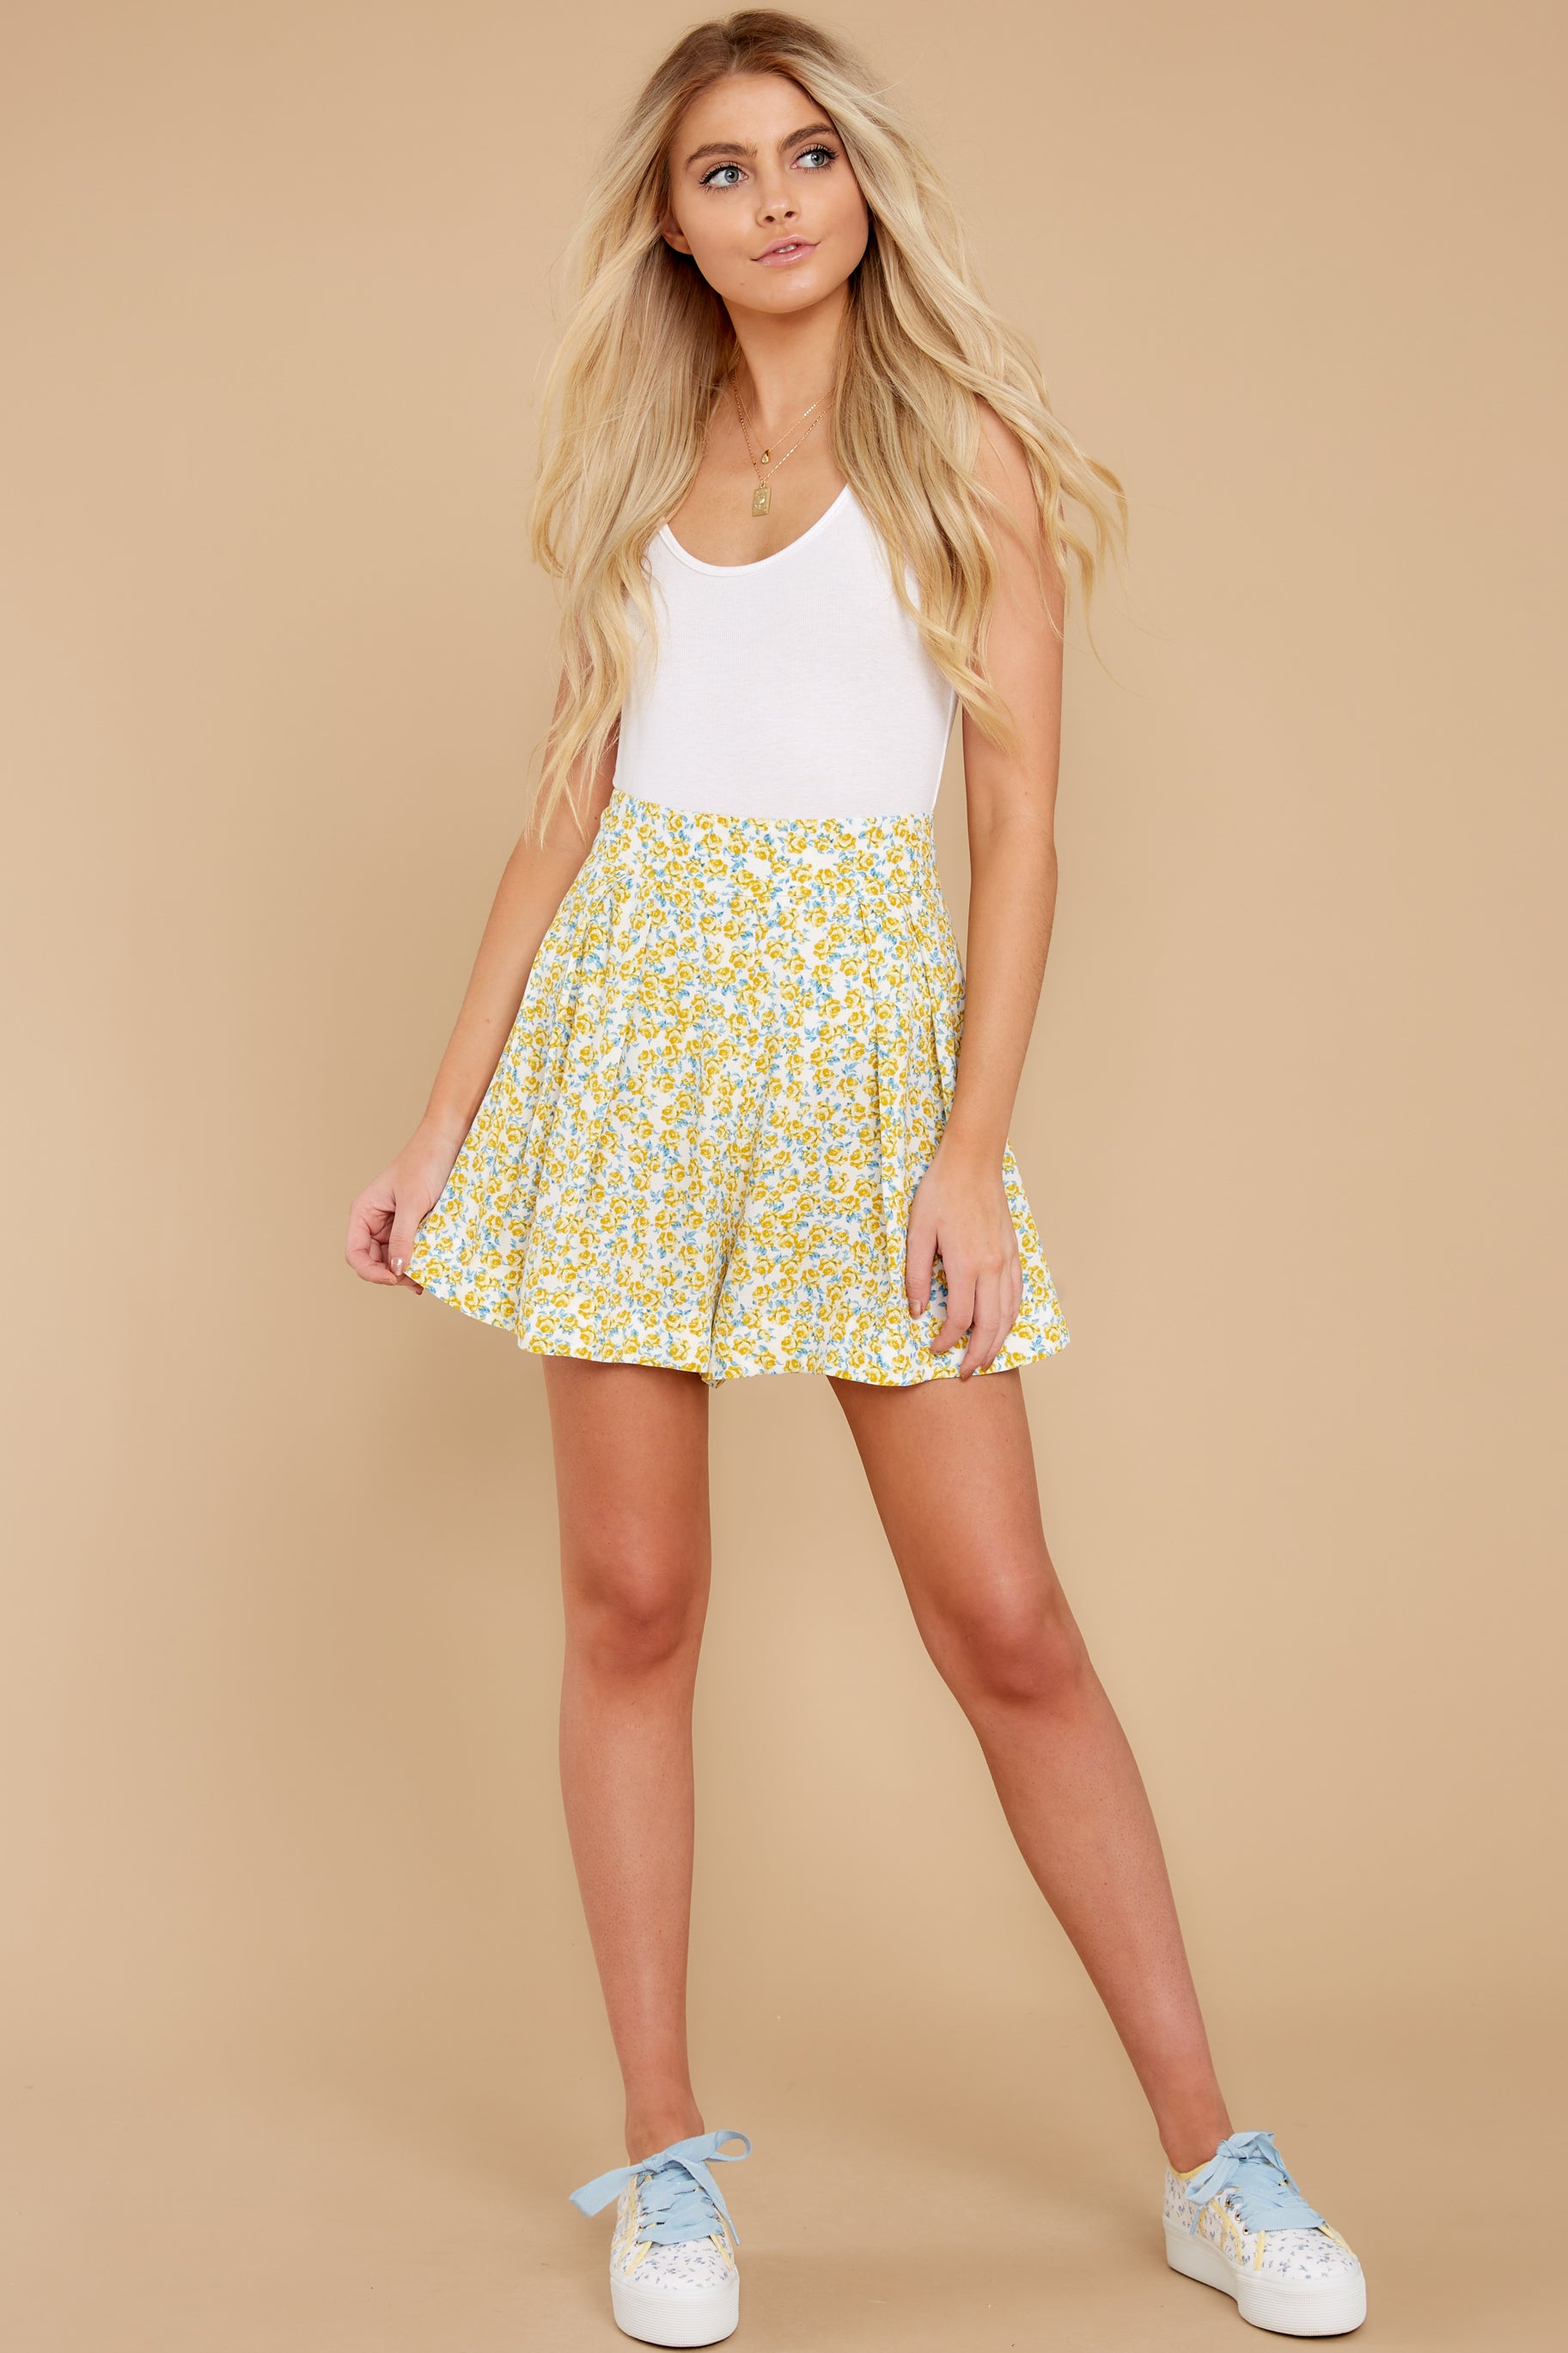 5 My Flawless Yellow Floral Print Skirt at reddress.com